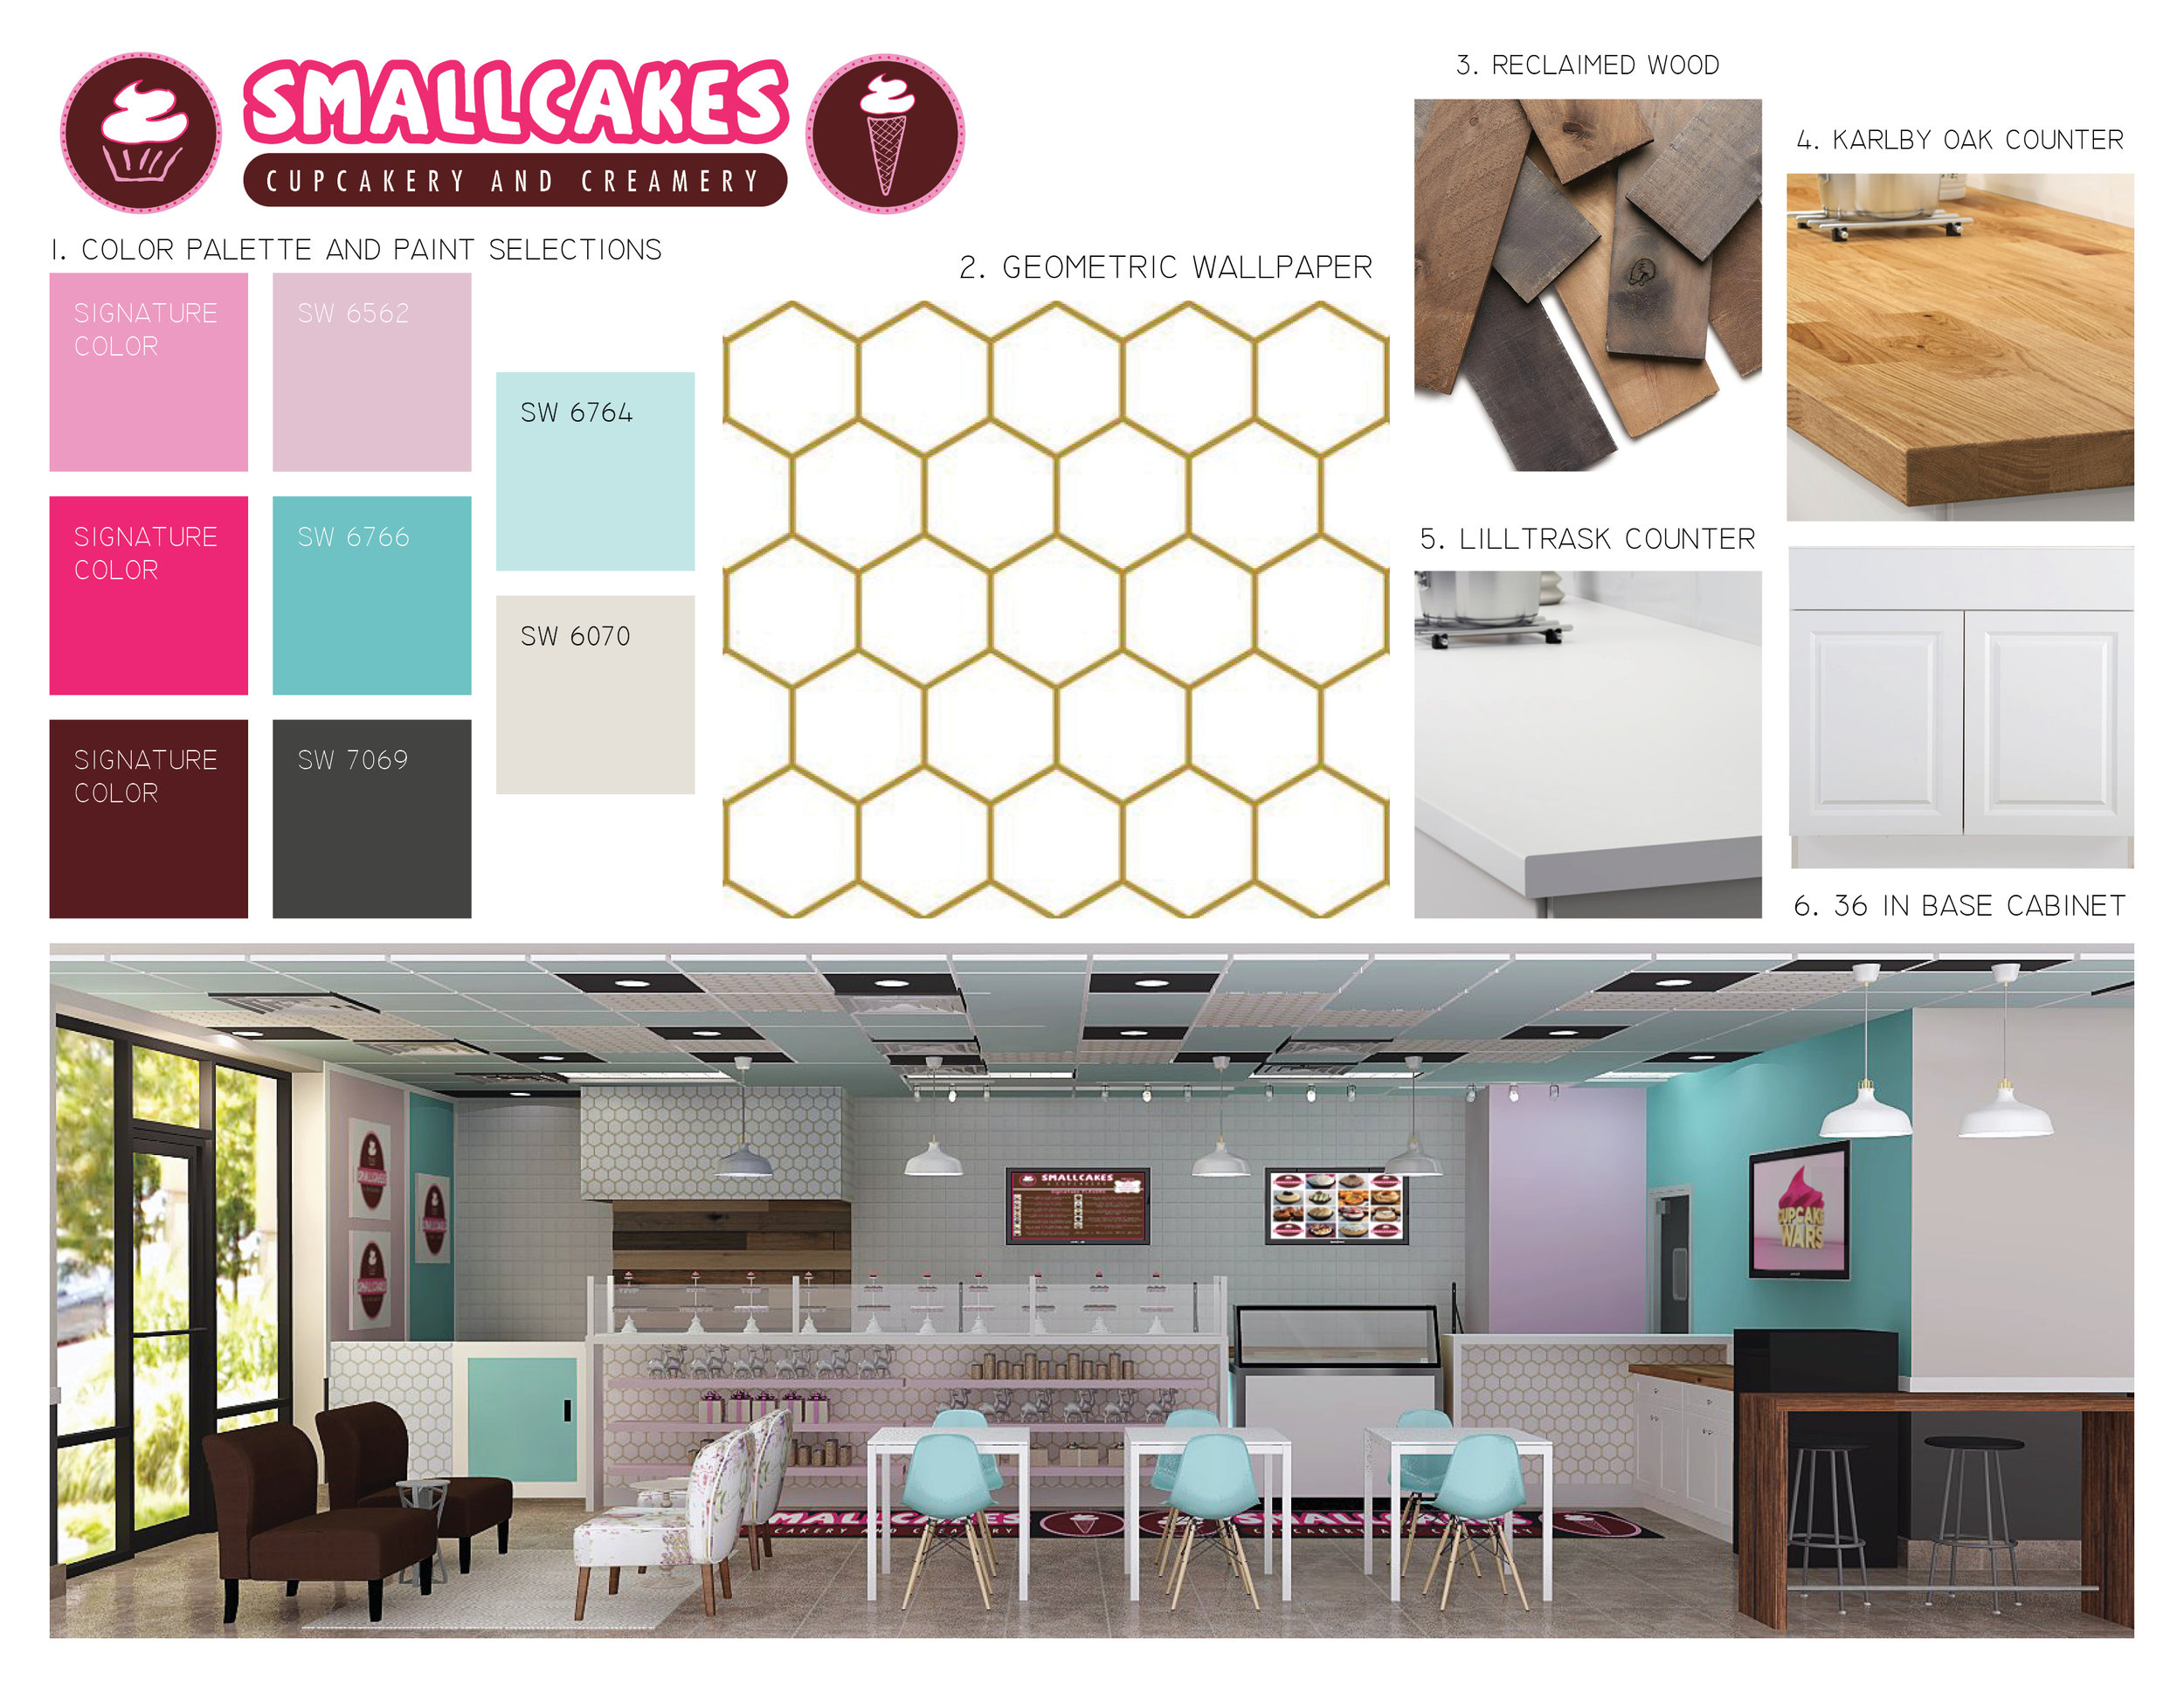 SMALL CAKES PROJECT2.jpg